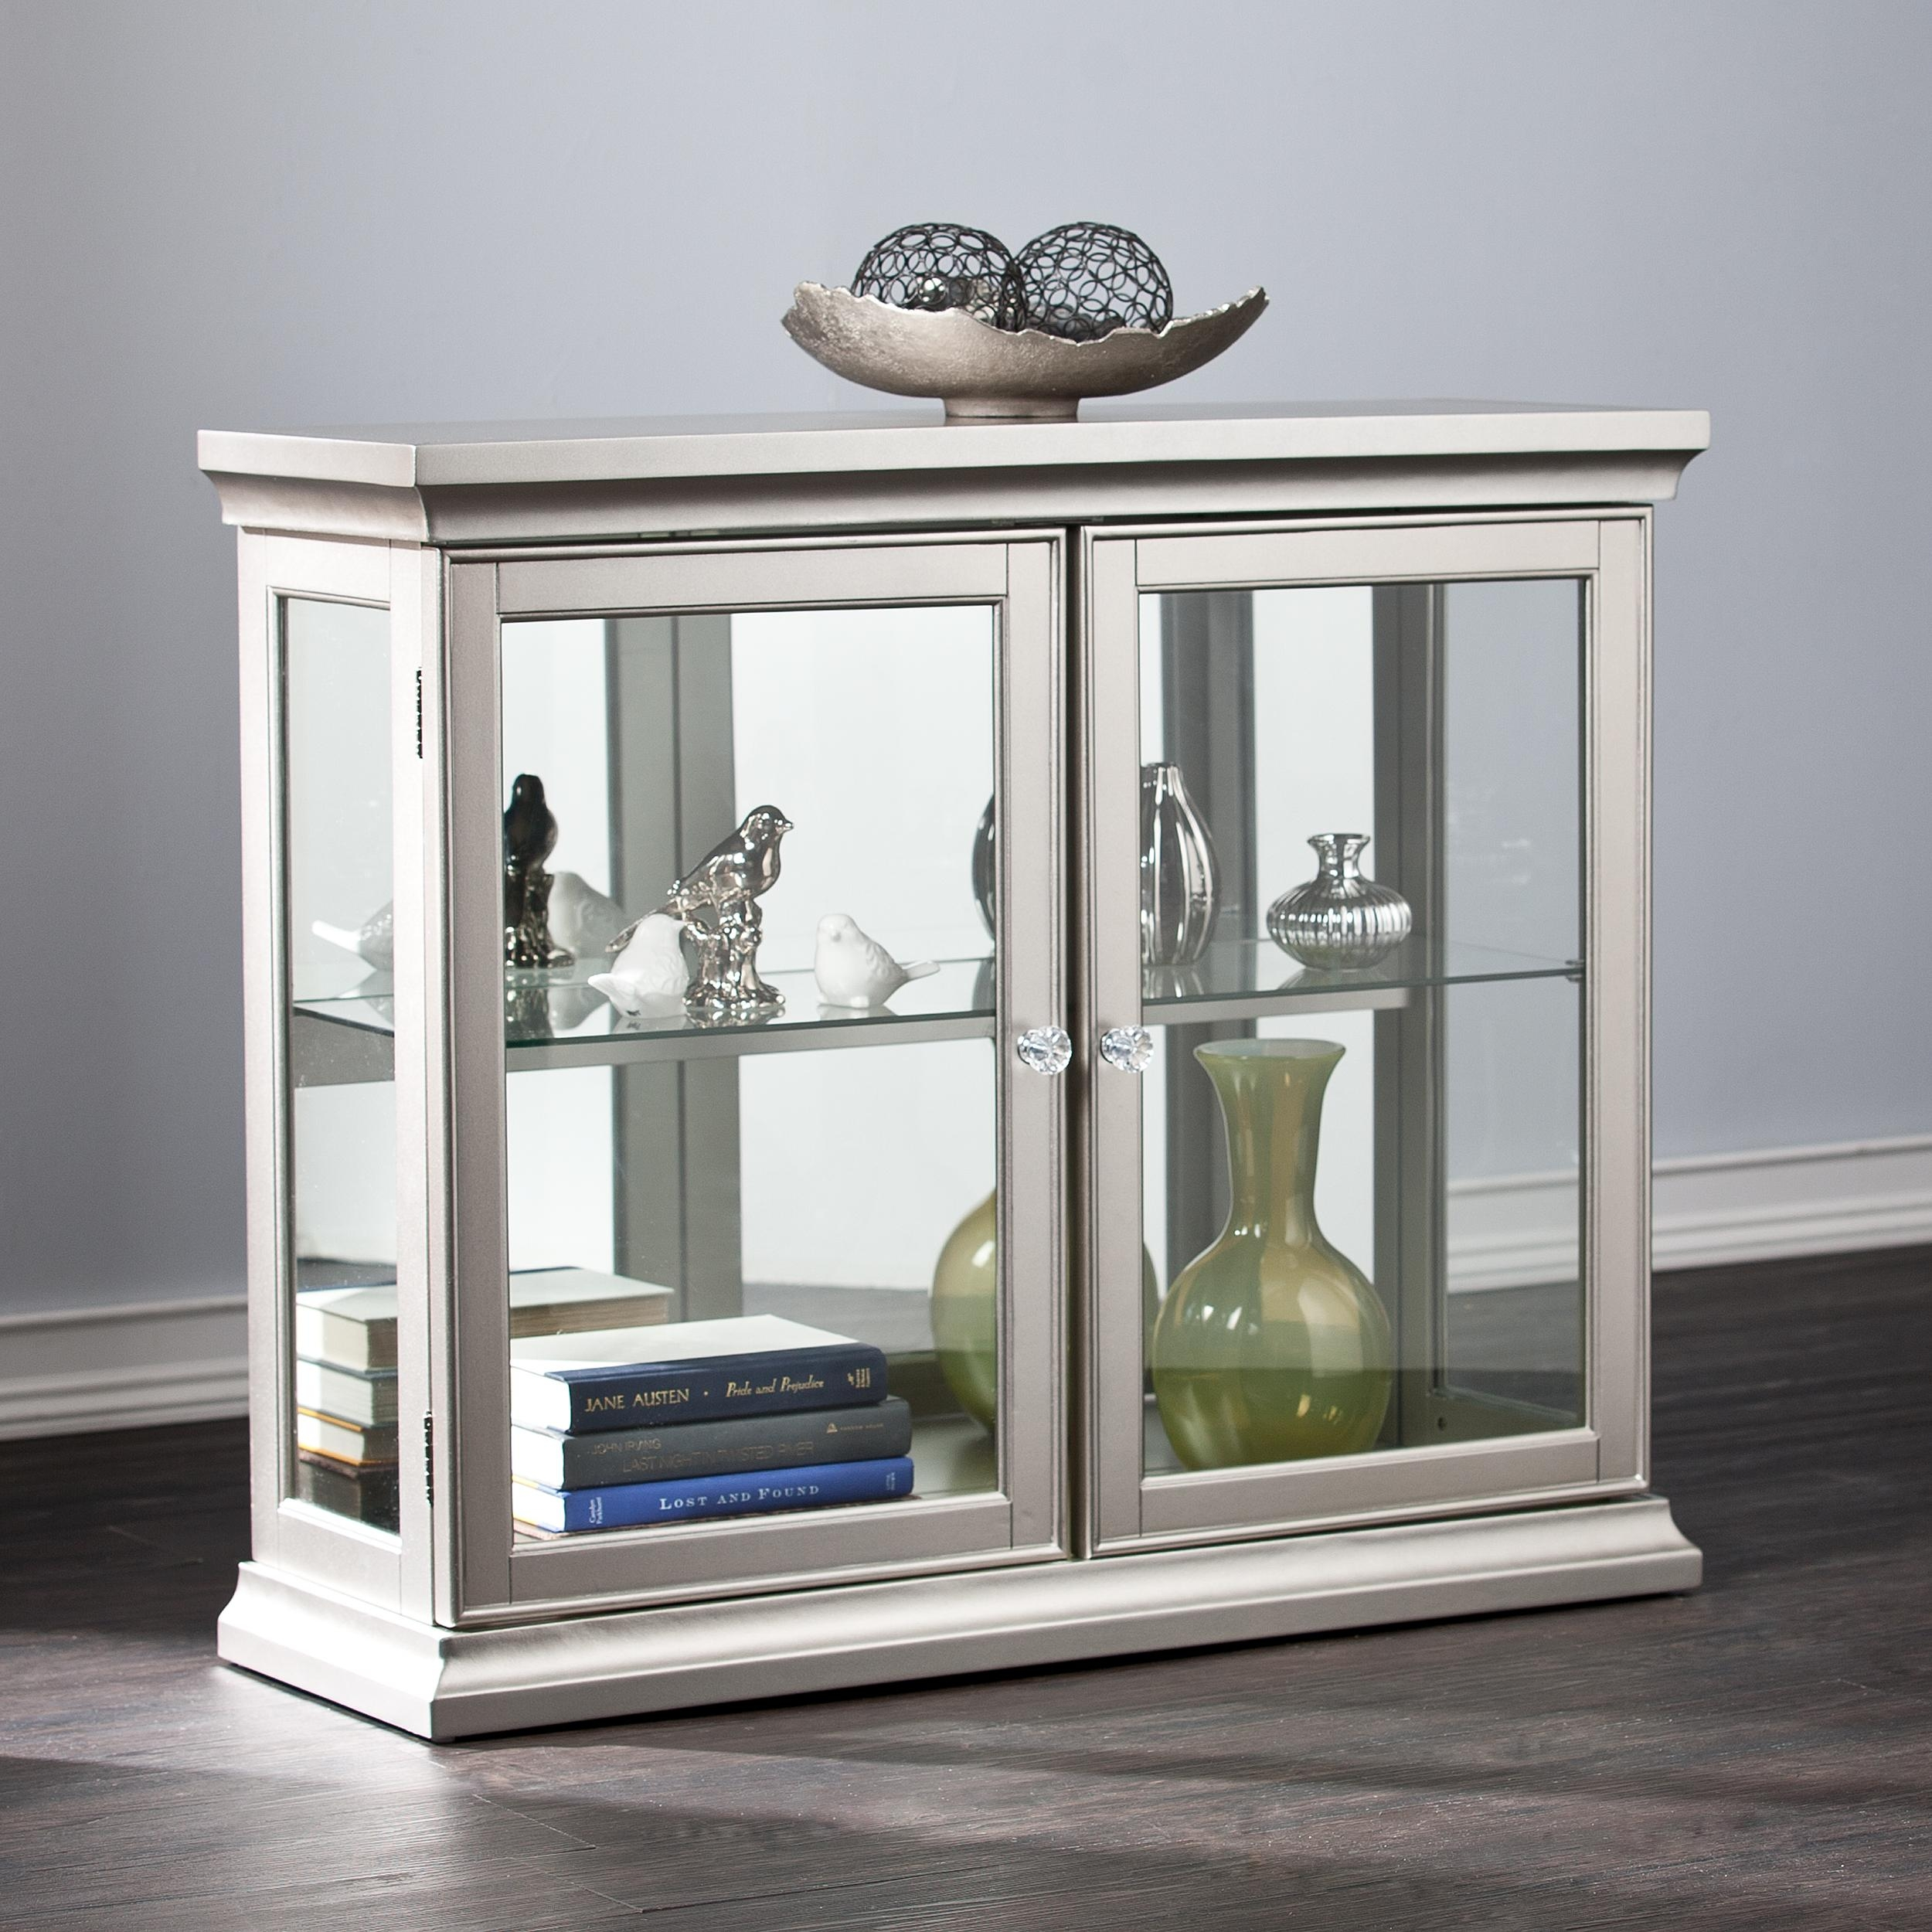 Etonnant French Glass Display Cabinets